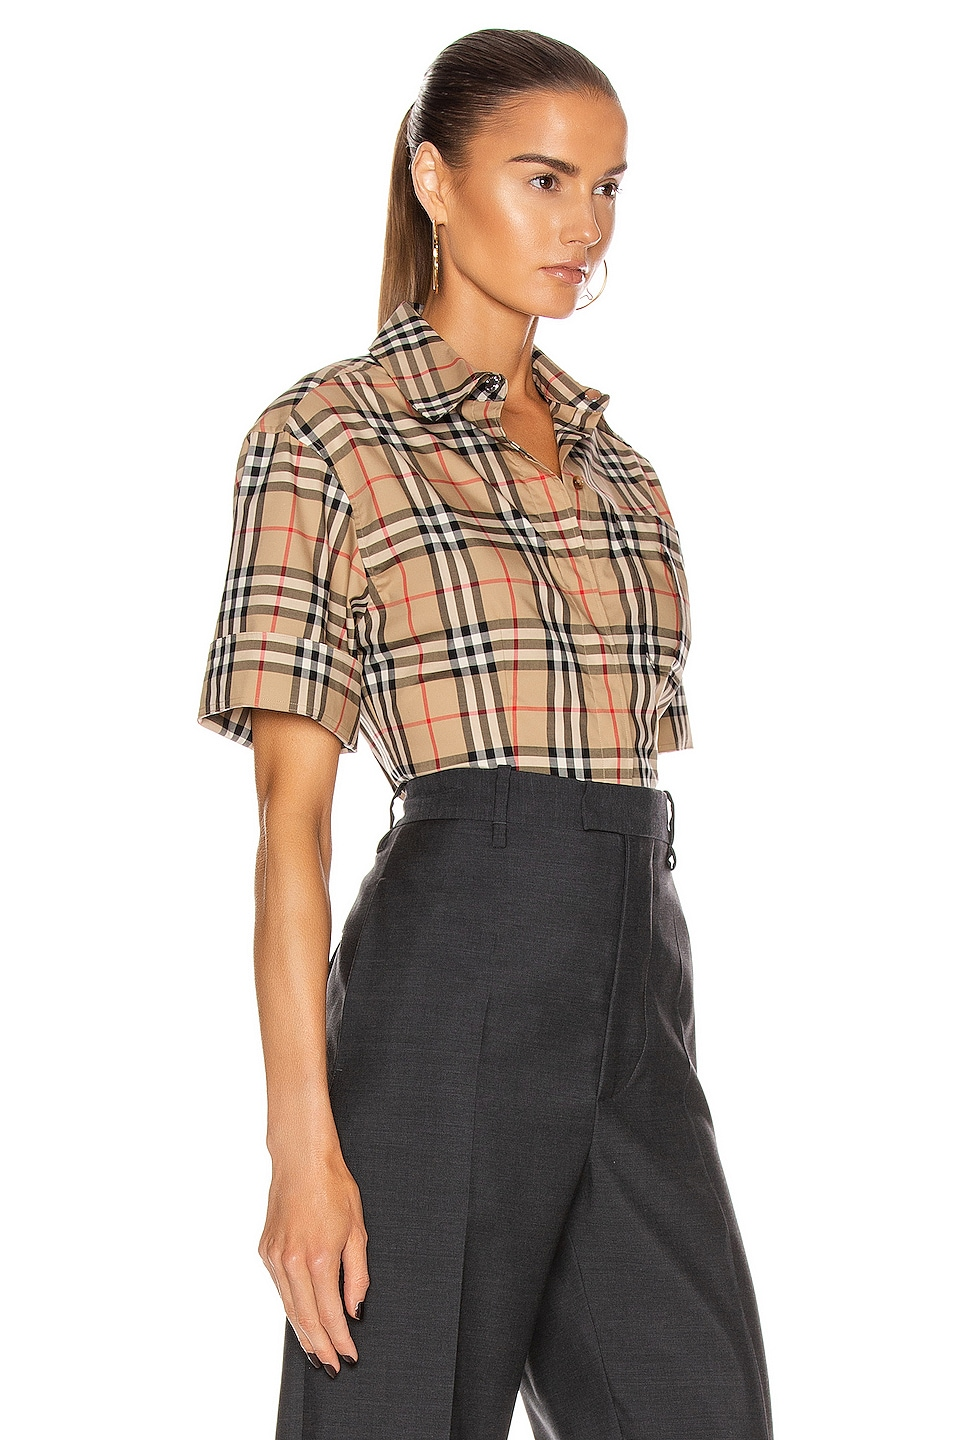 Image 4 of Burberry Short Sleeve Boxy Fit Top in Archive Beige Check